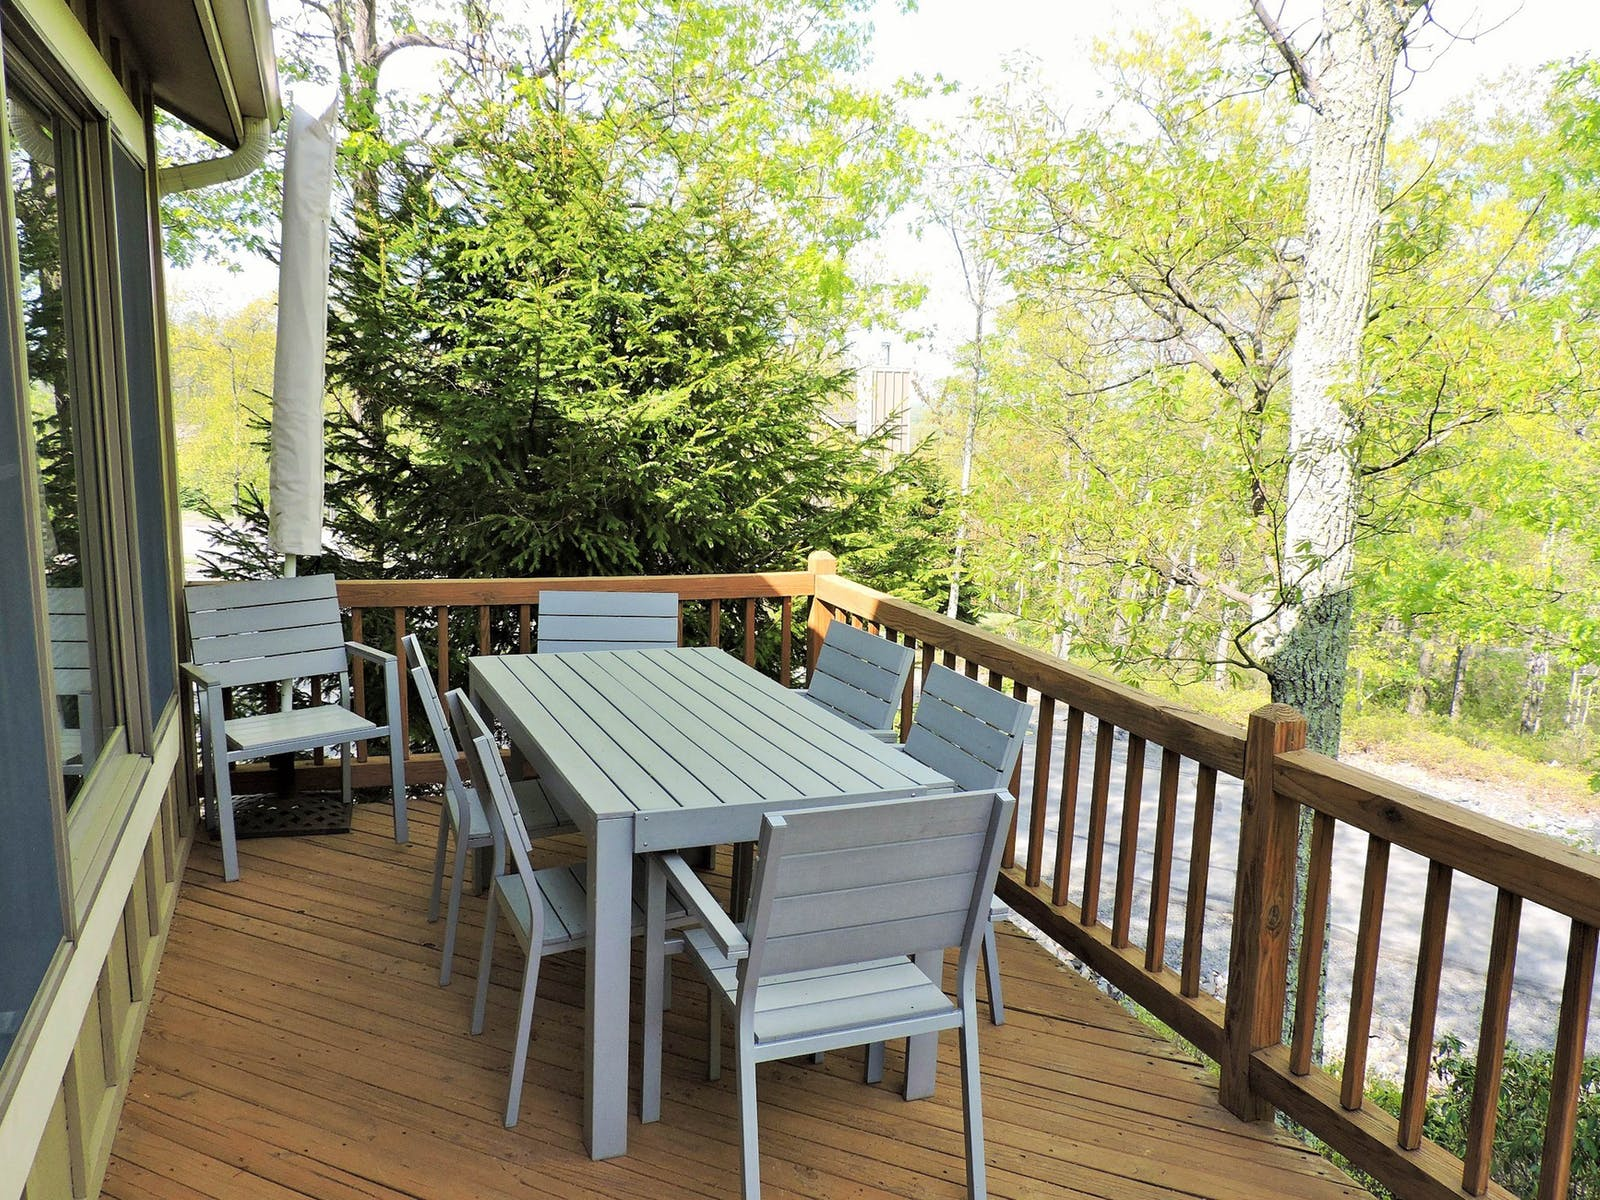 Vacation rental deck in Tannersville, PA with views of the forest